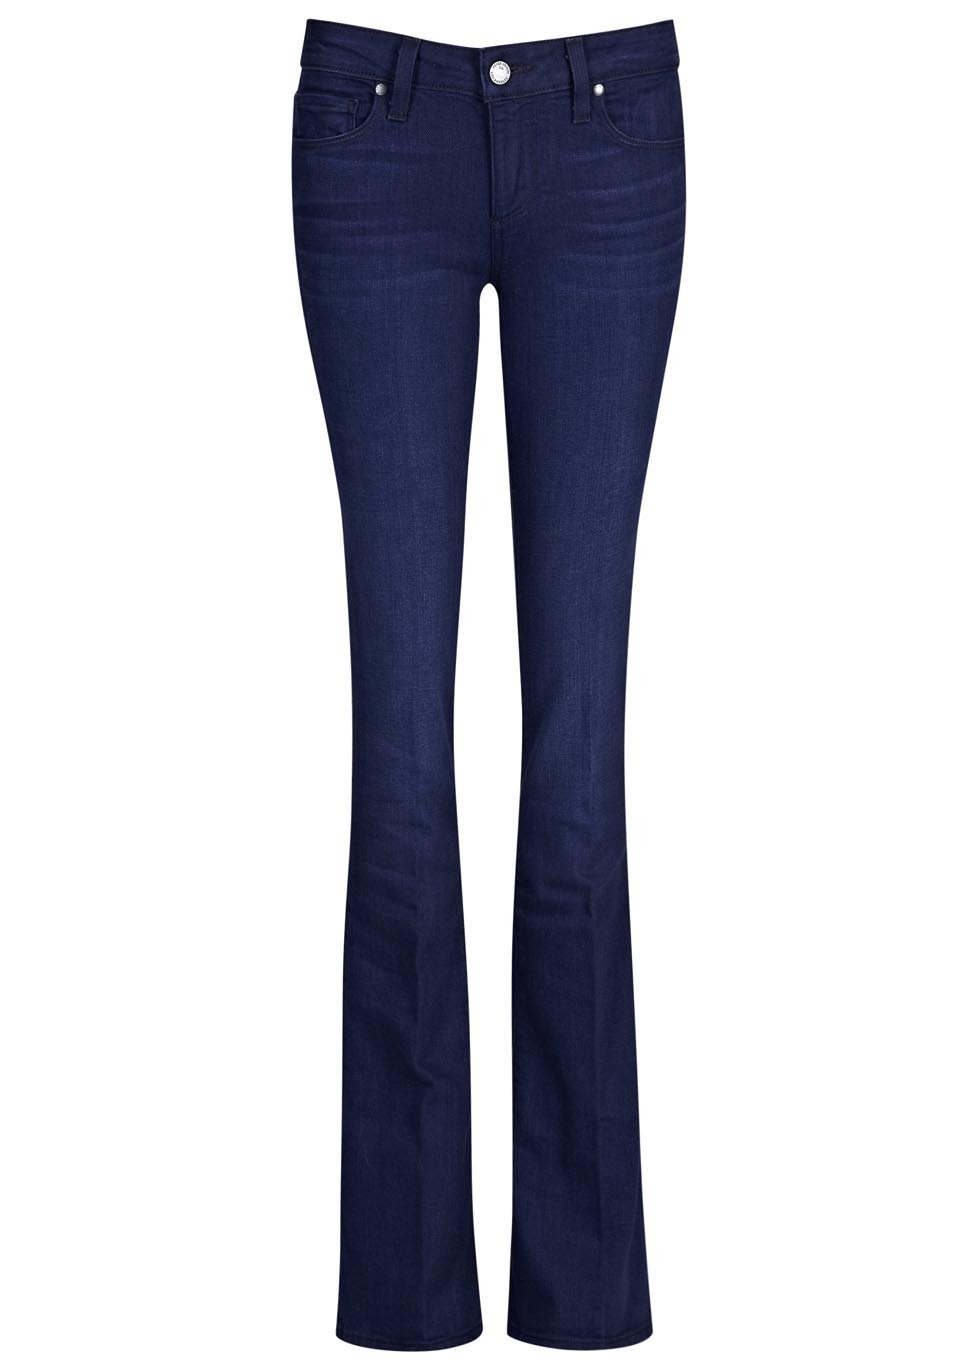 Lou Lou Dark Blue Flared Jeans - style: flares; length: standard; pattern: plain; pocket detail: traditional 5 pocket; waist: mid/regular rise; predominant colour: navy; occasions: casual, evening, creative work; fibres: cotton - stretch; jeans detail: whiskering; texture group: denim; pattern type: fabric; season: a/w 2015